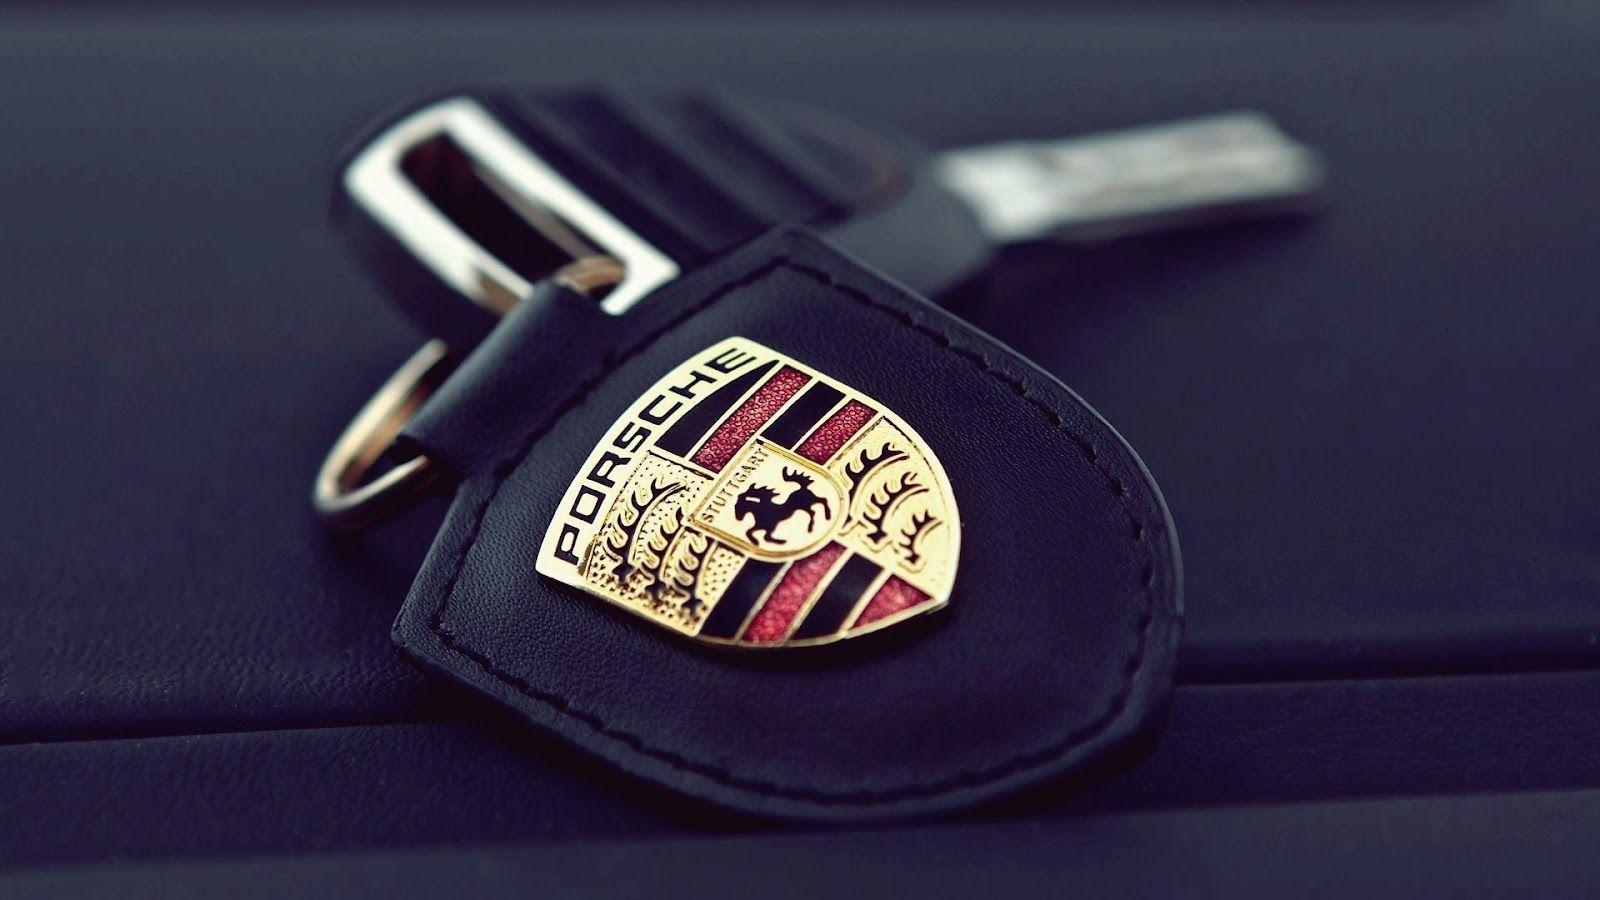 Porsche Hd Wallpapers 1080p: Porsche Logo Wallpapers